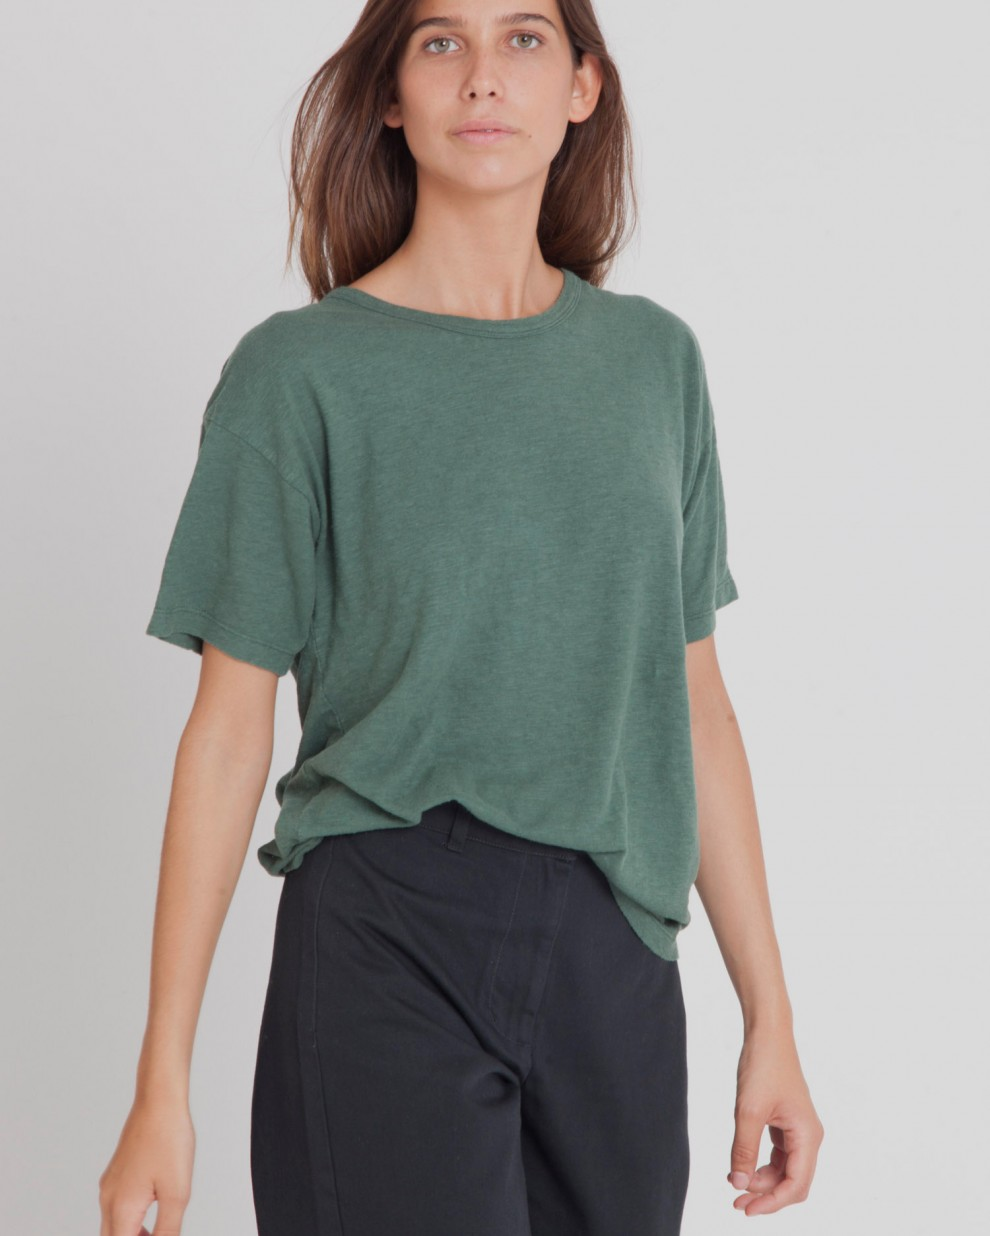 Camiseta Hemp Pine Green